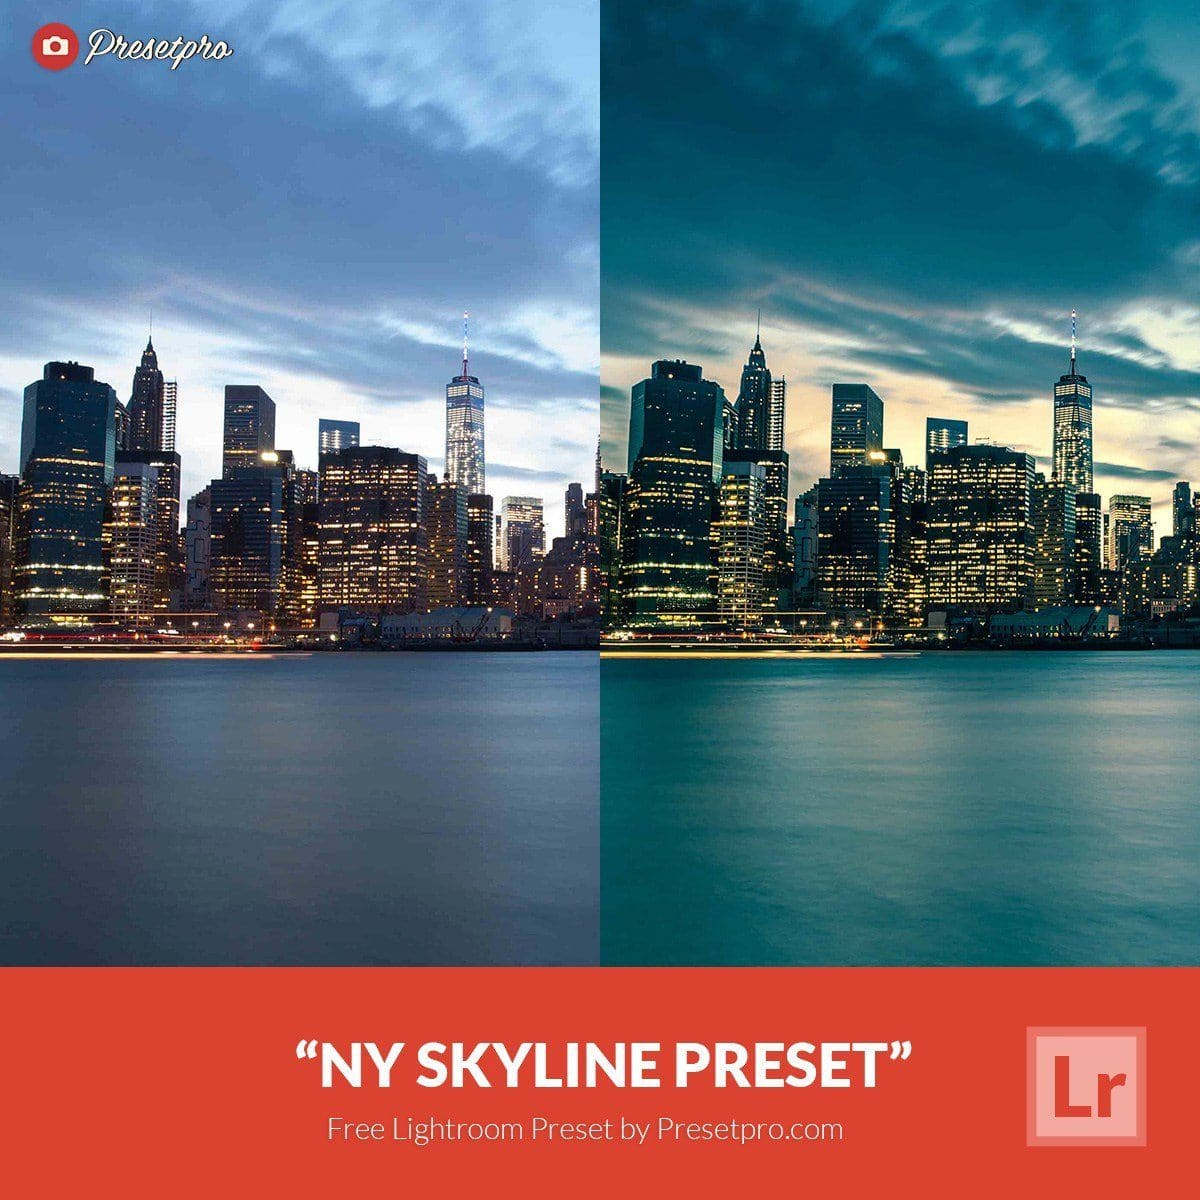 Free Lightroom Preset NY Skyline